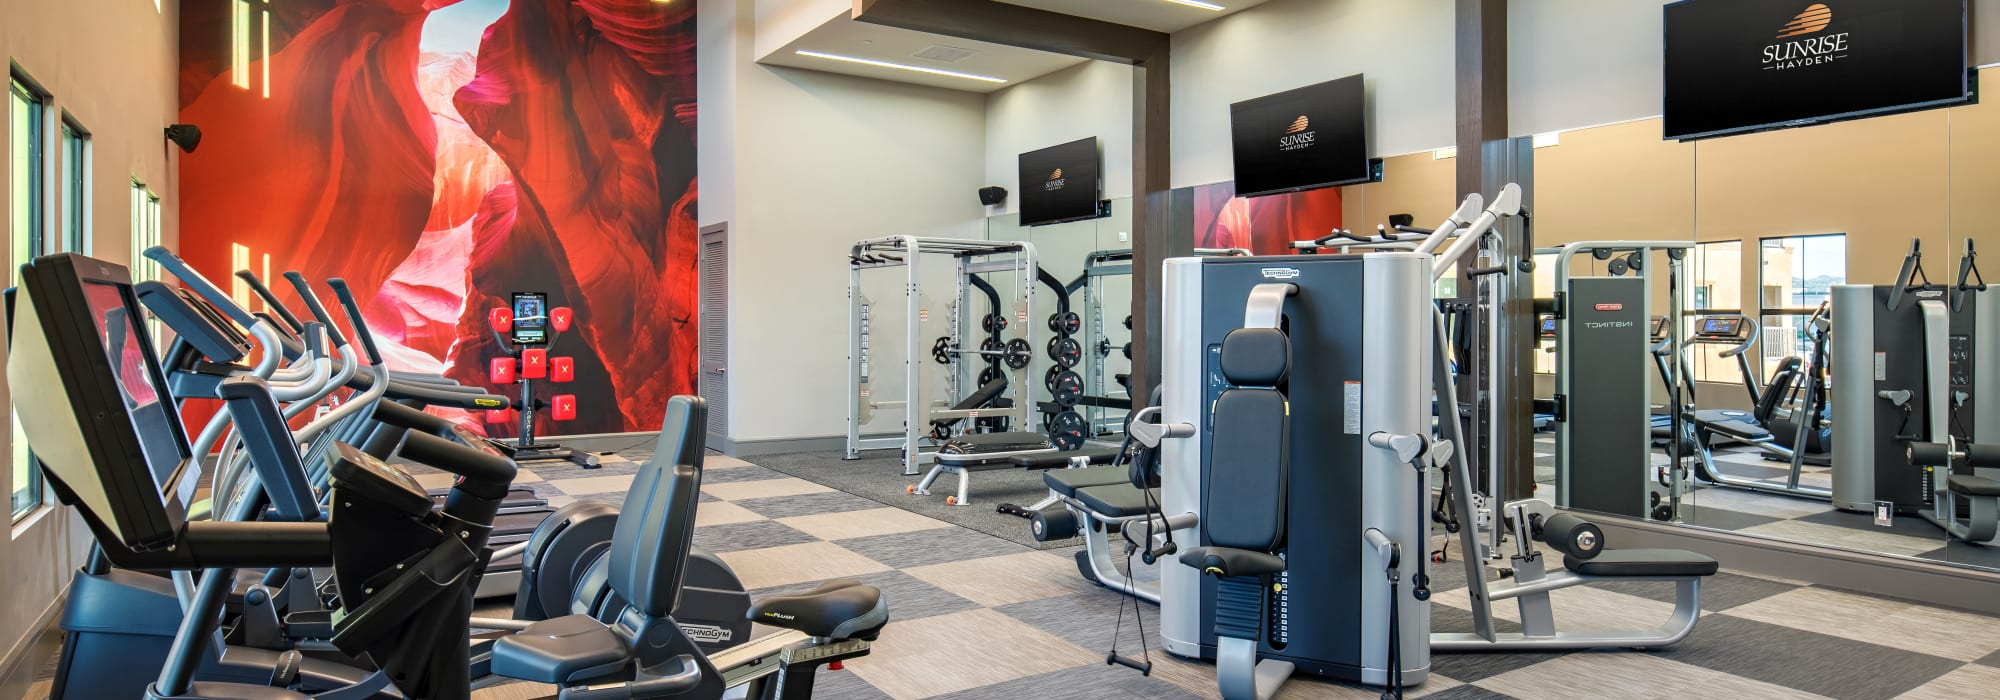 Very well-equipped onsite fitness center at The Core Scottsdale in Scottsdale, Arizona